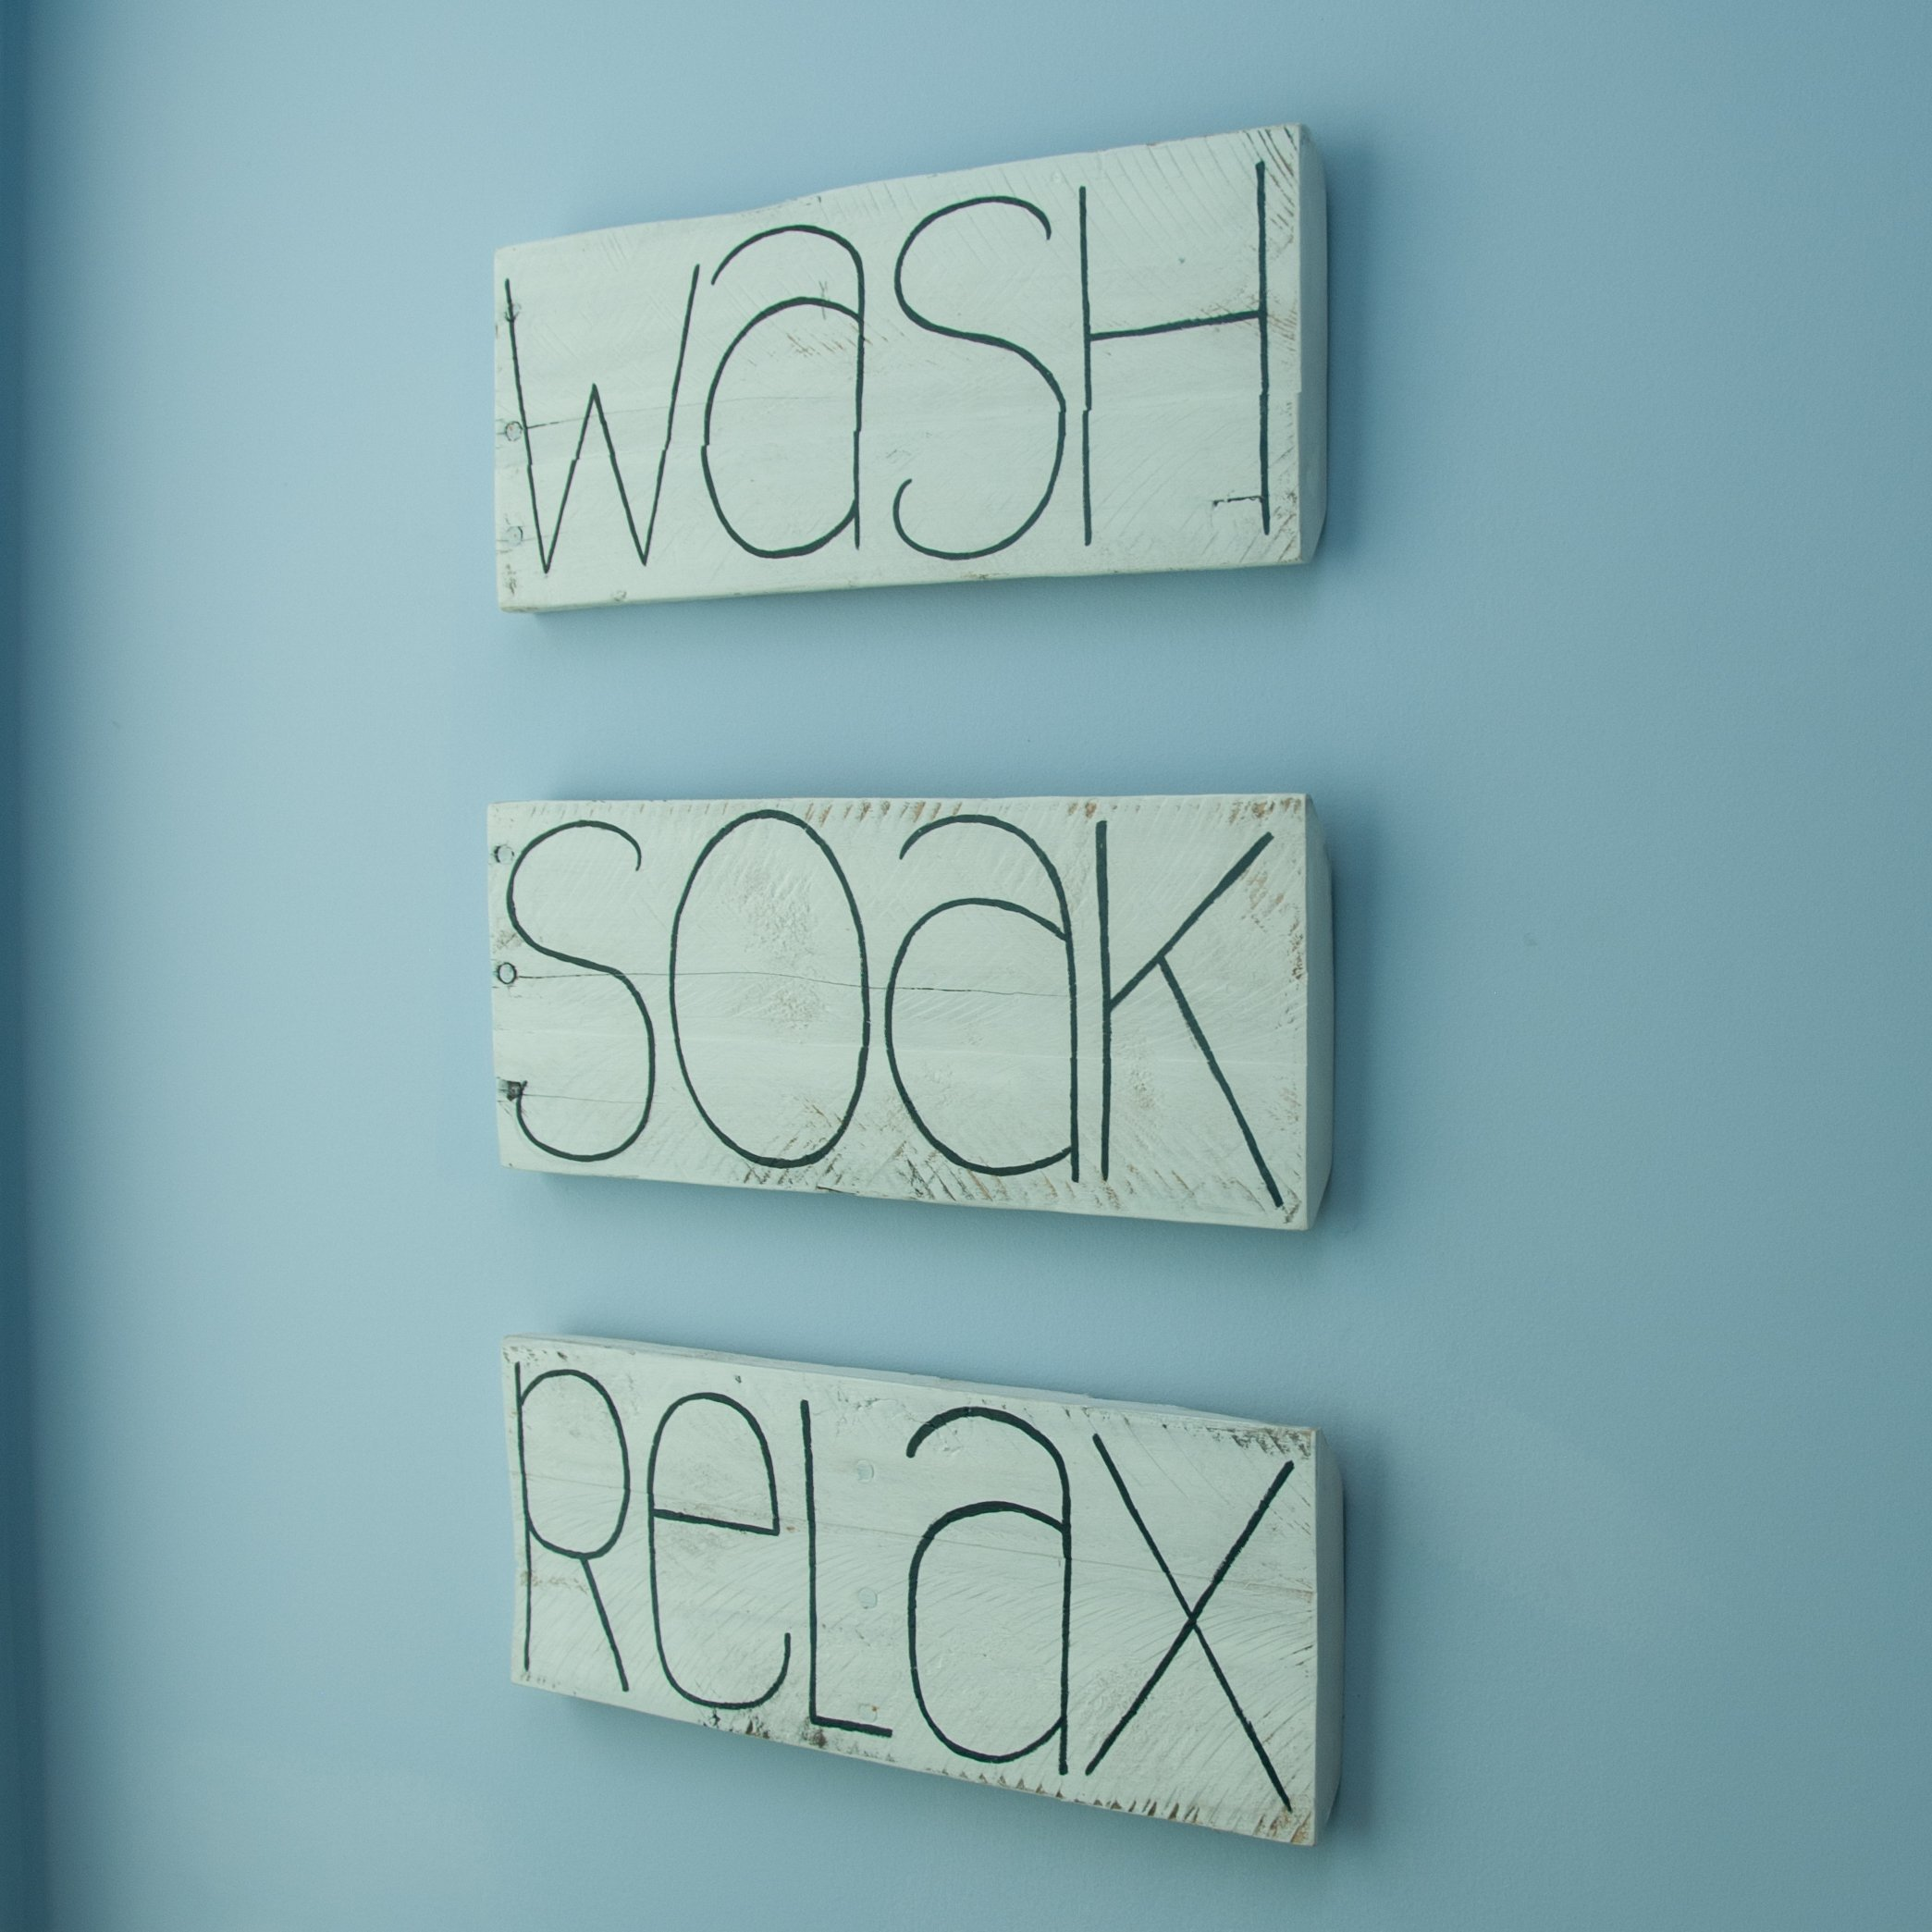 SET OF THREE Wash Soak Relax Bathroom decor Bathroom signs Shabby chic decor Wood bathroom decor Spa decor Spa gifts Bathroom wall decor Bathroom art